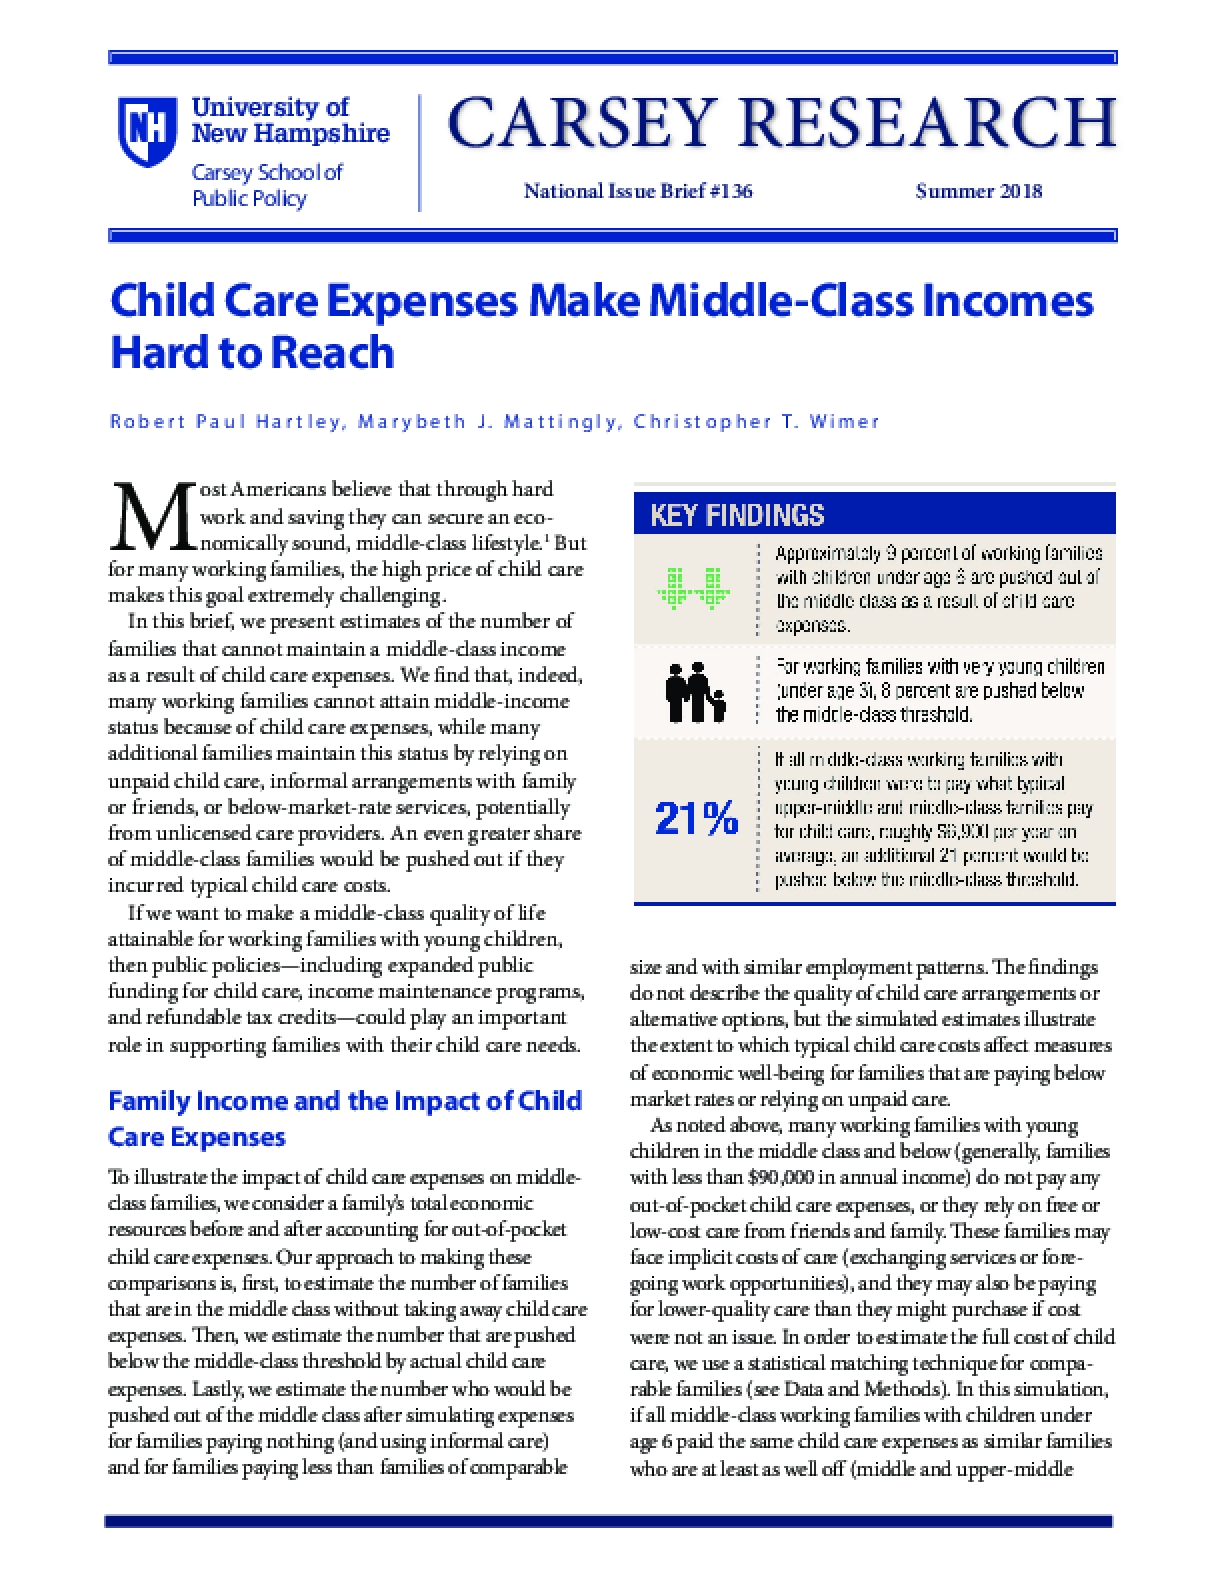 Child Care Expenses Make Middle Class Incomes Hard To